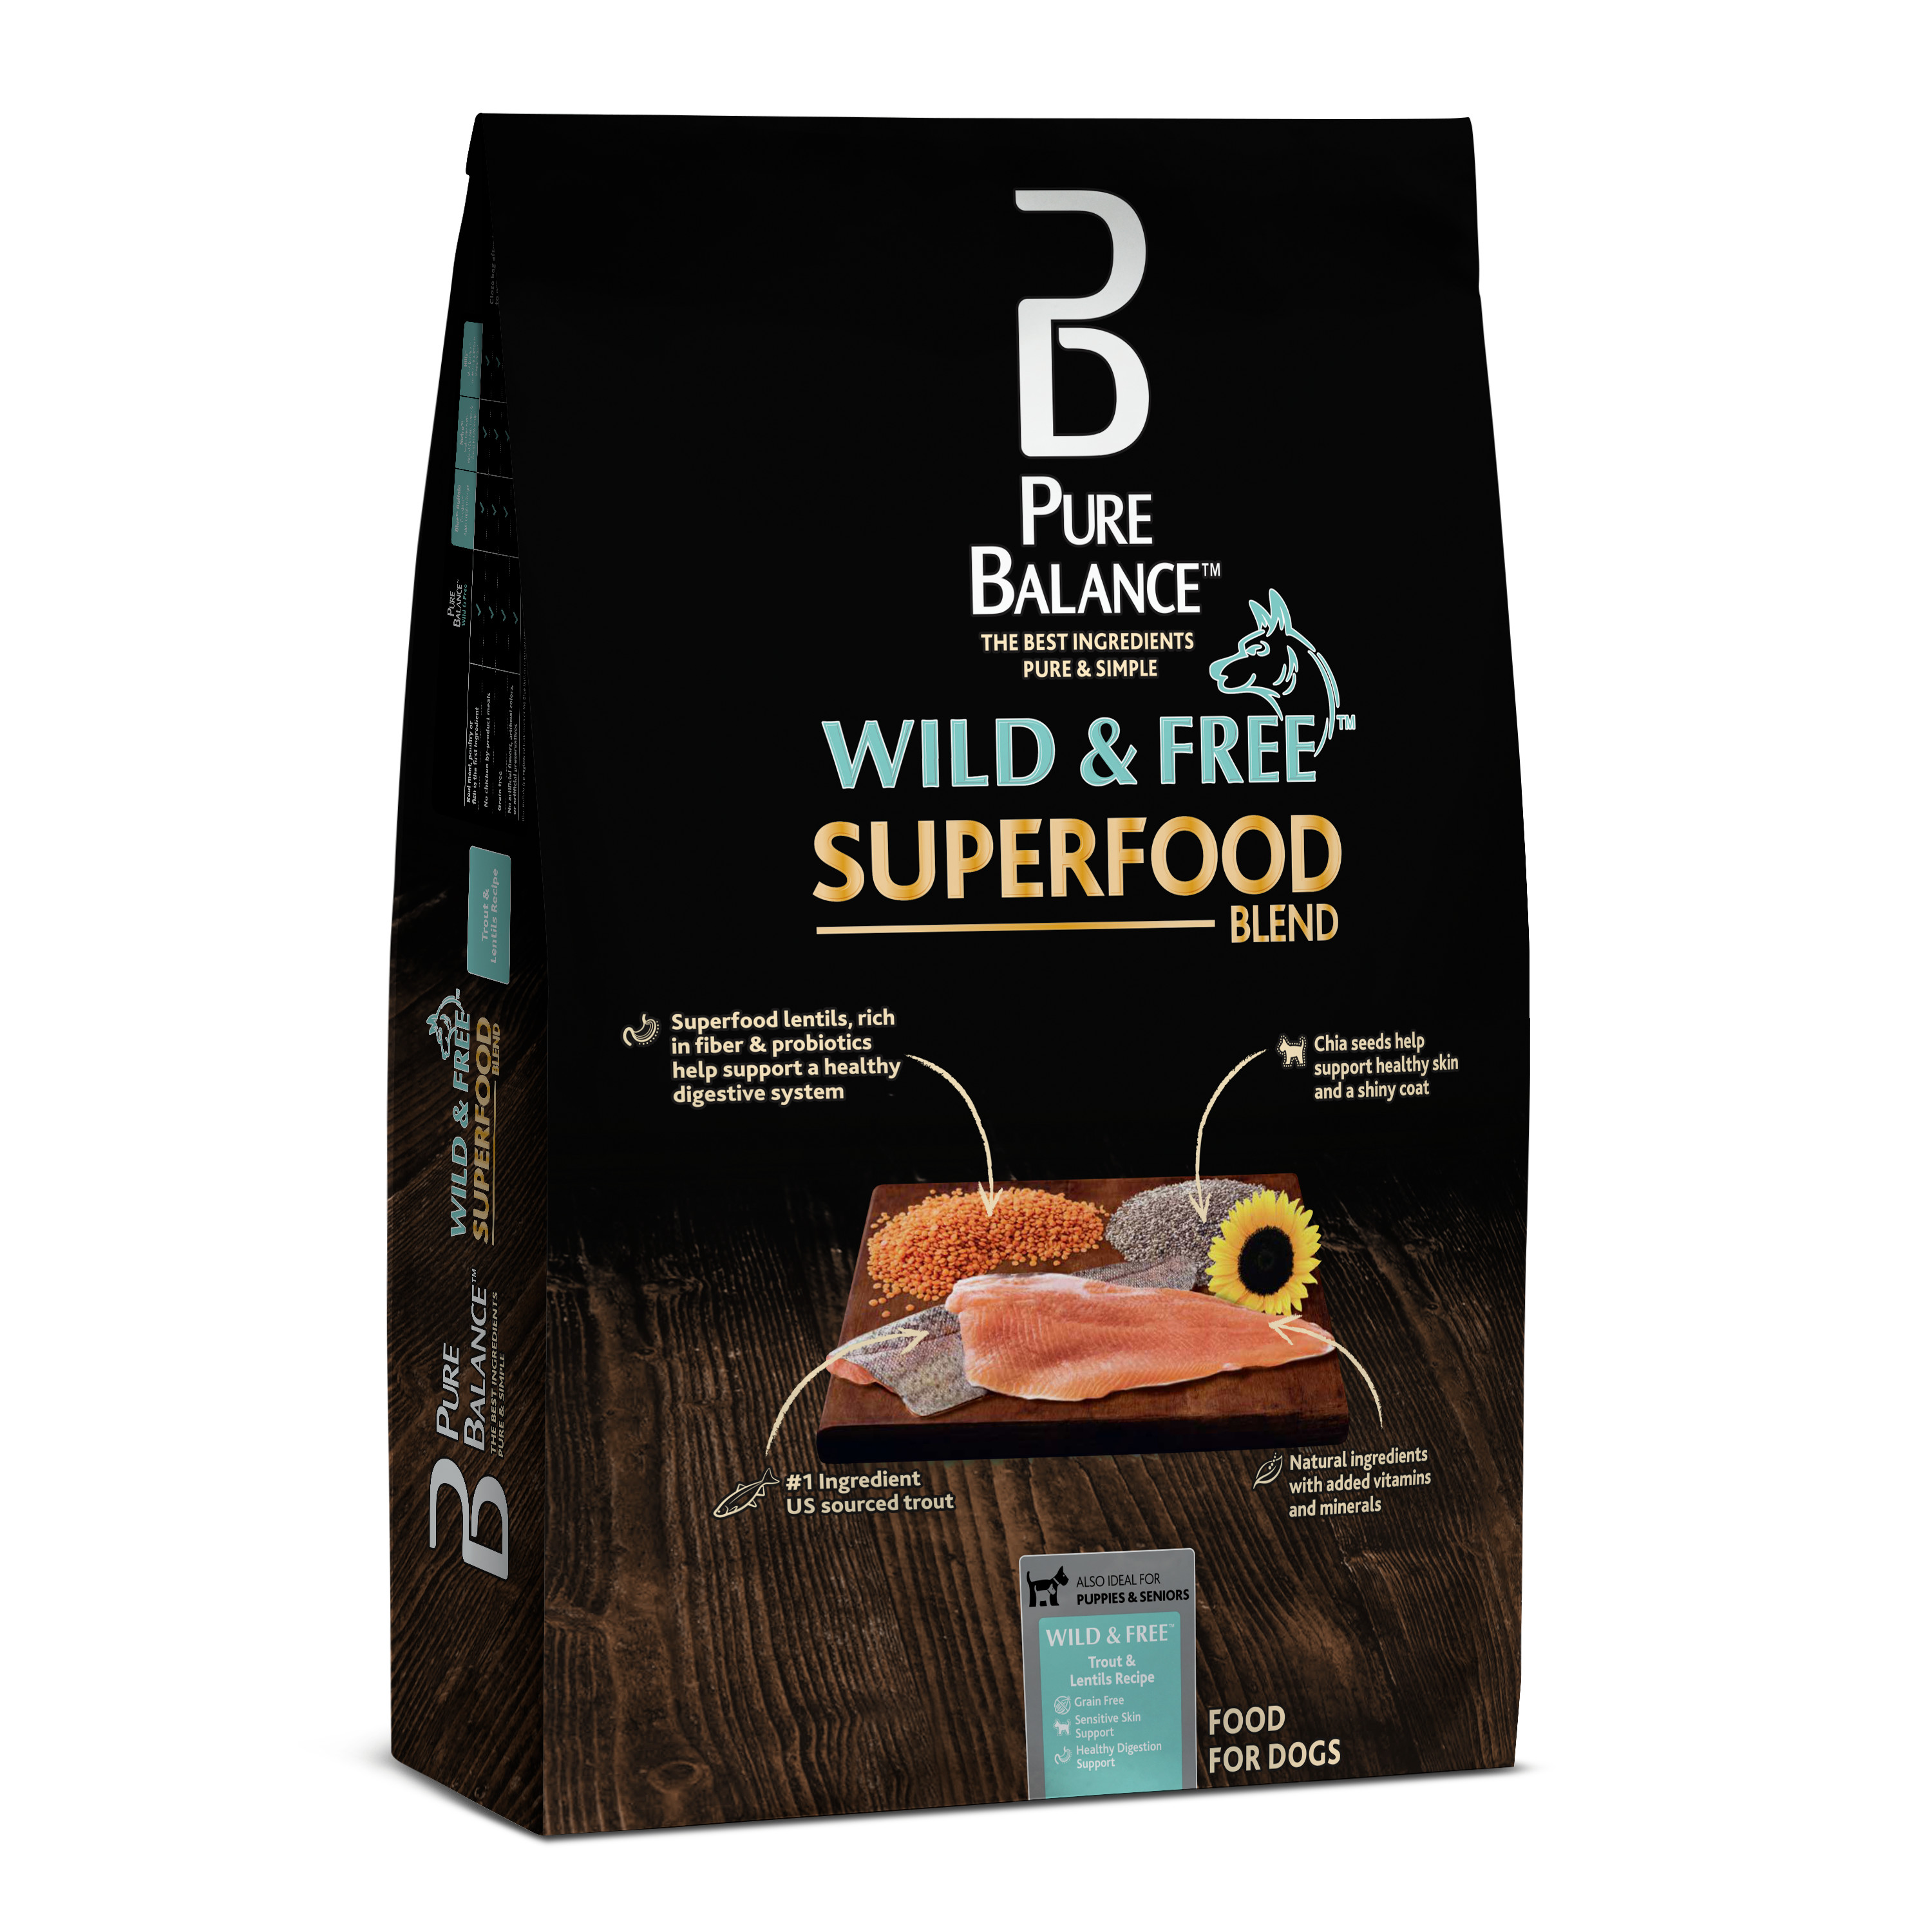 Pure Balance Wild & Free Superfood Blend Trout & Lentil Recipe Dry Dog Food, 4 lb